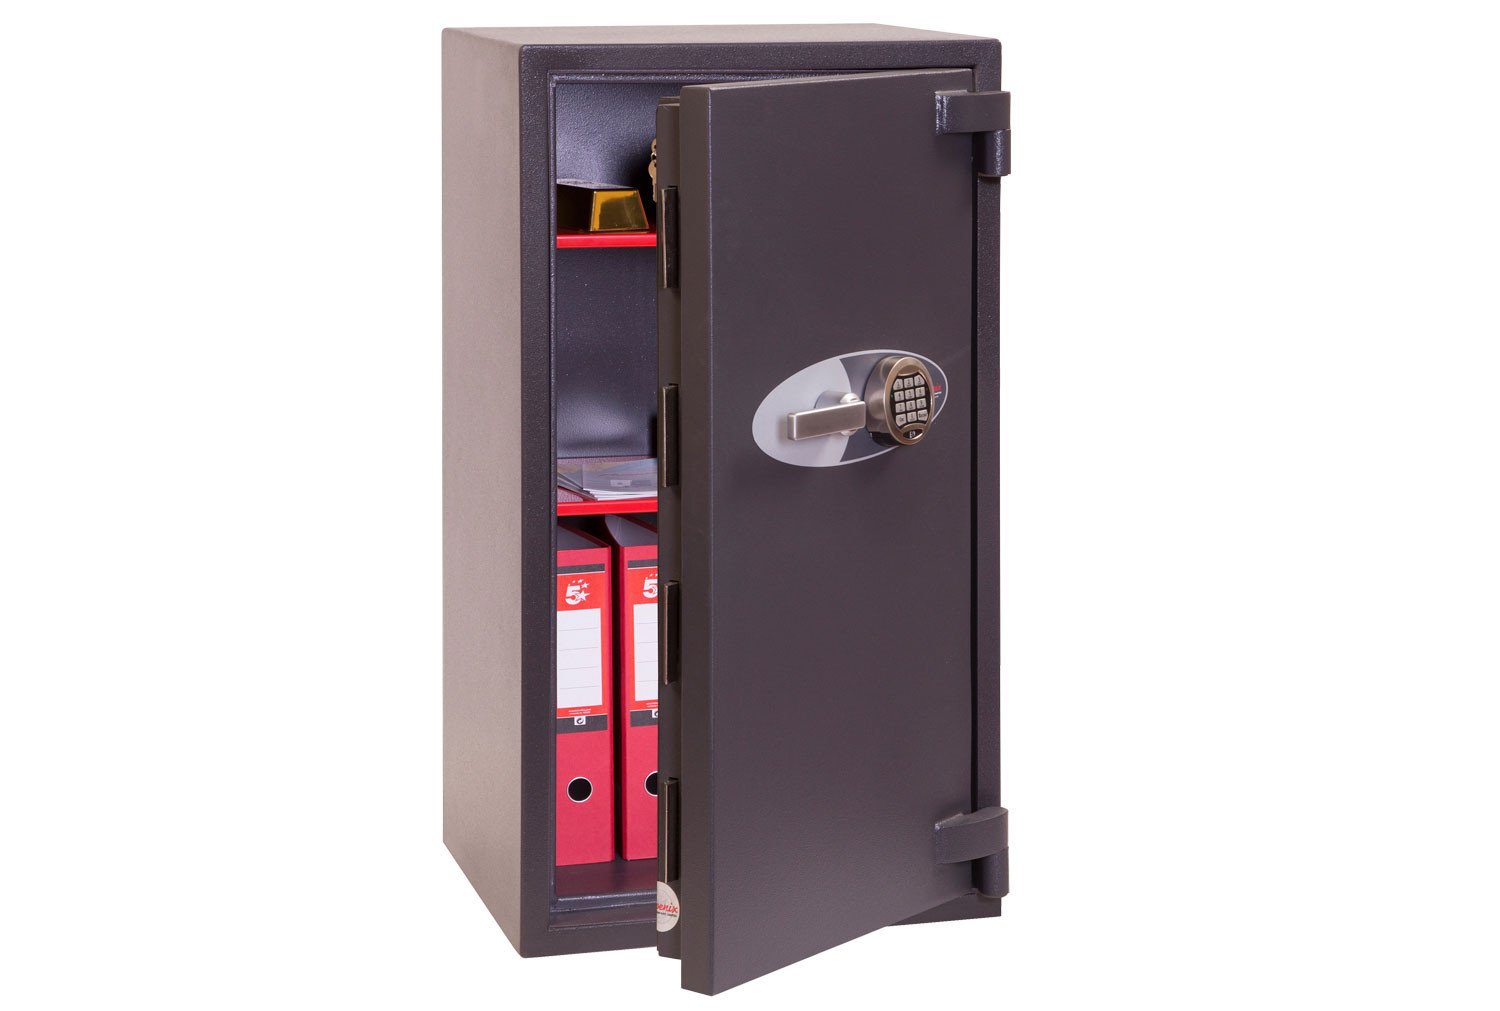 Phoenix Elara HS3553E High Security Safe With Electronic Lock (110ltrs)